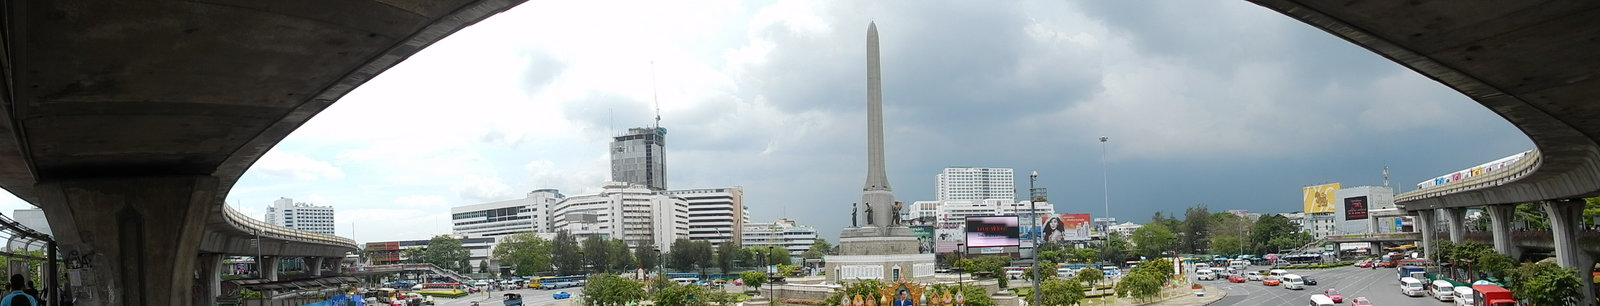 Victory Monument 2013